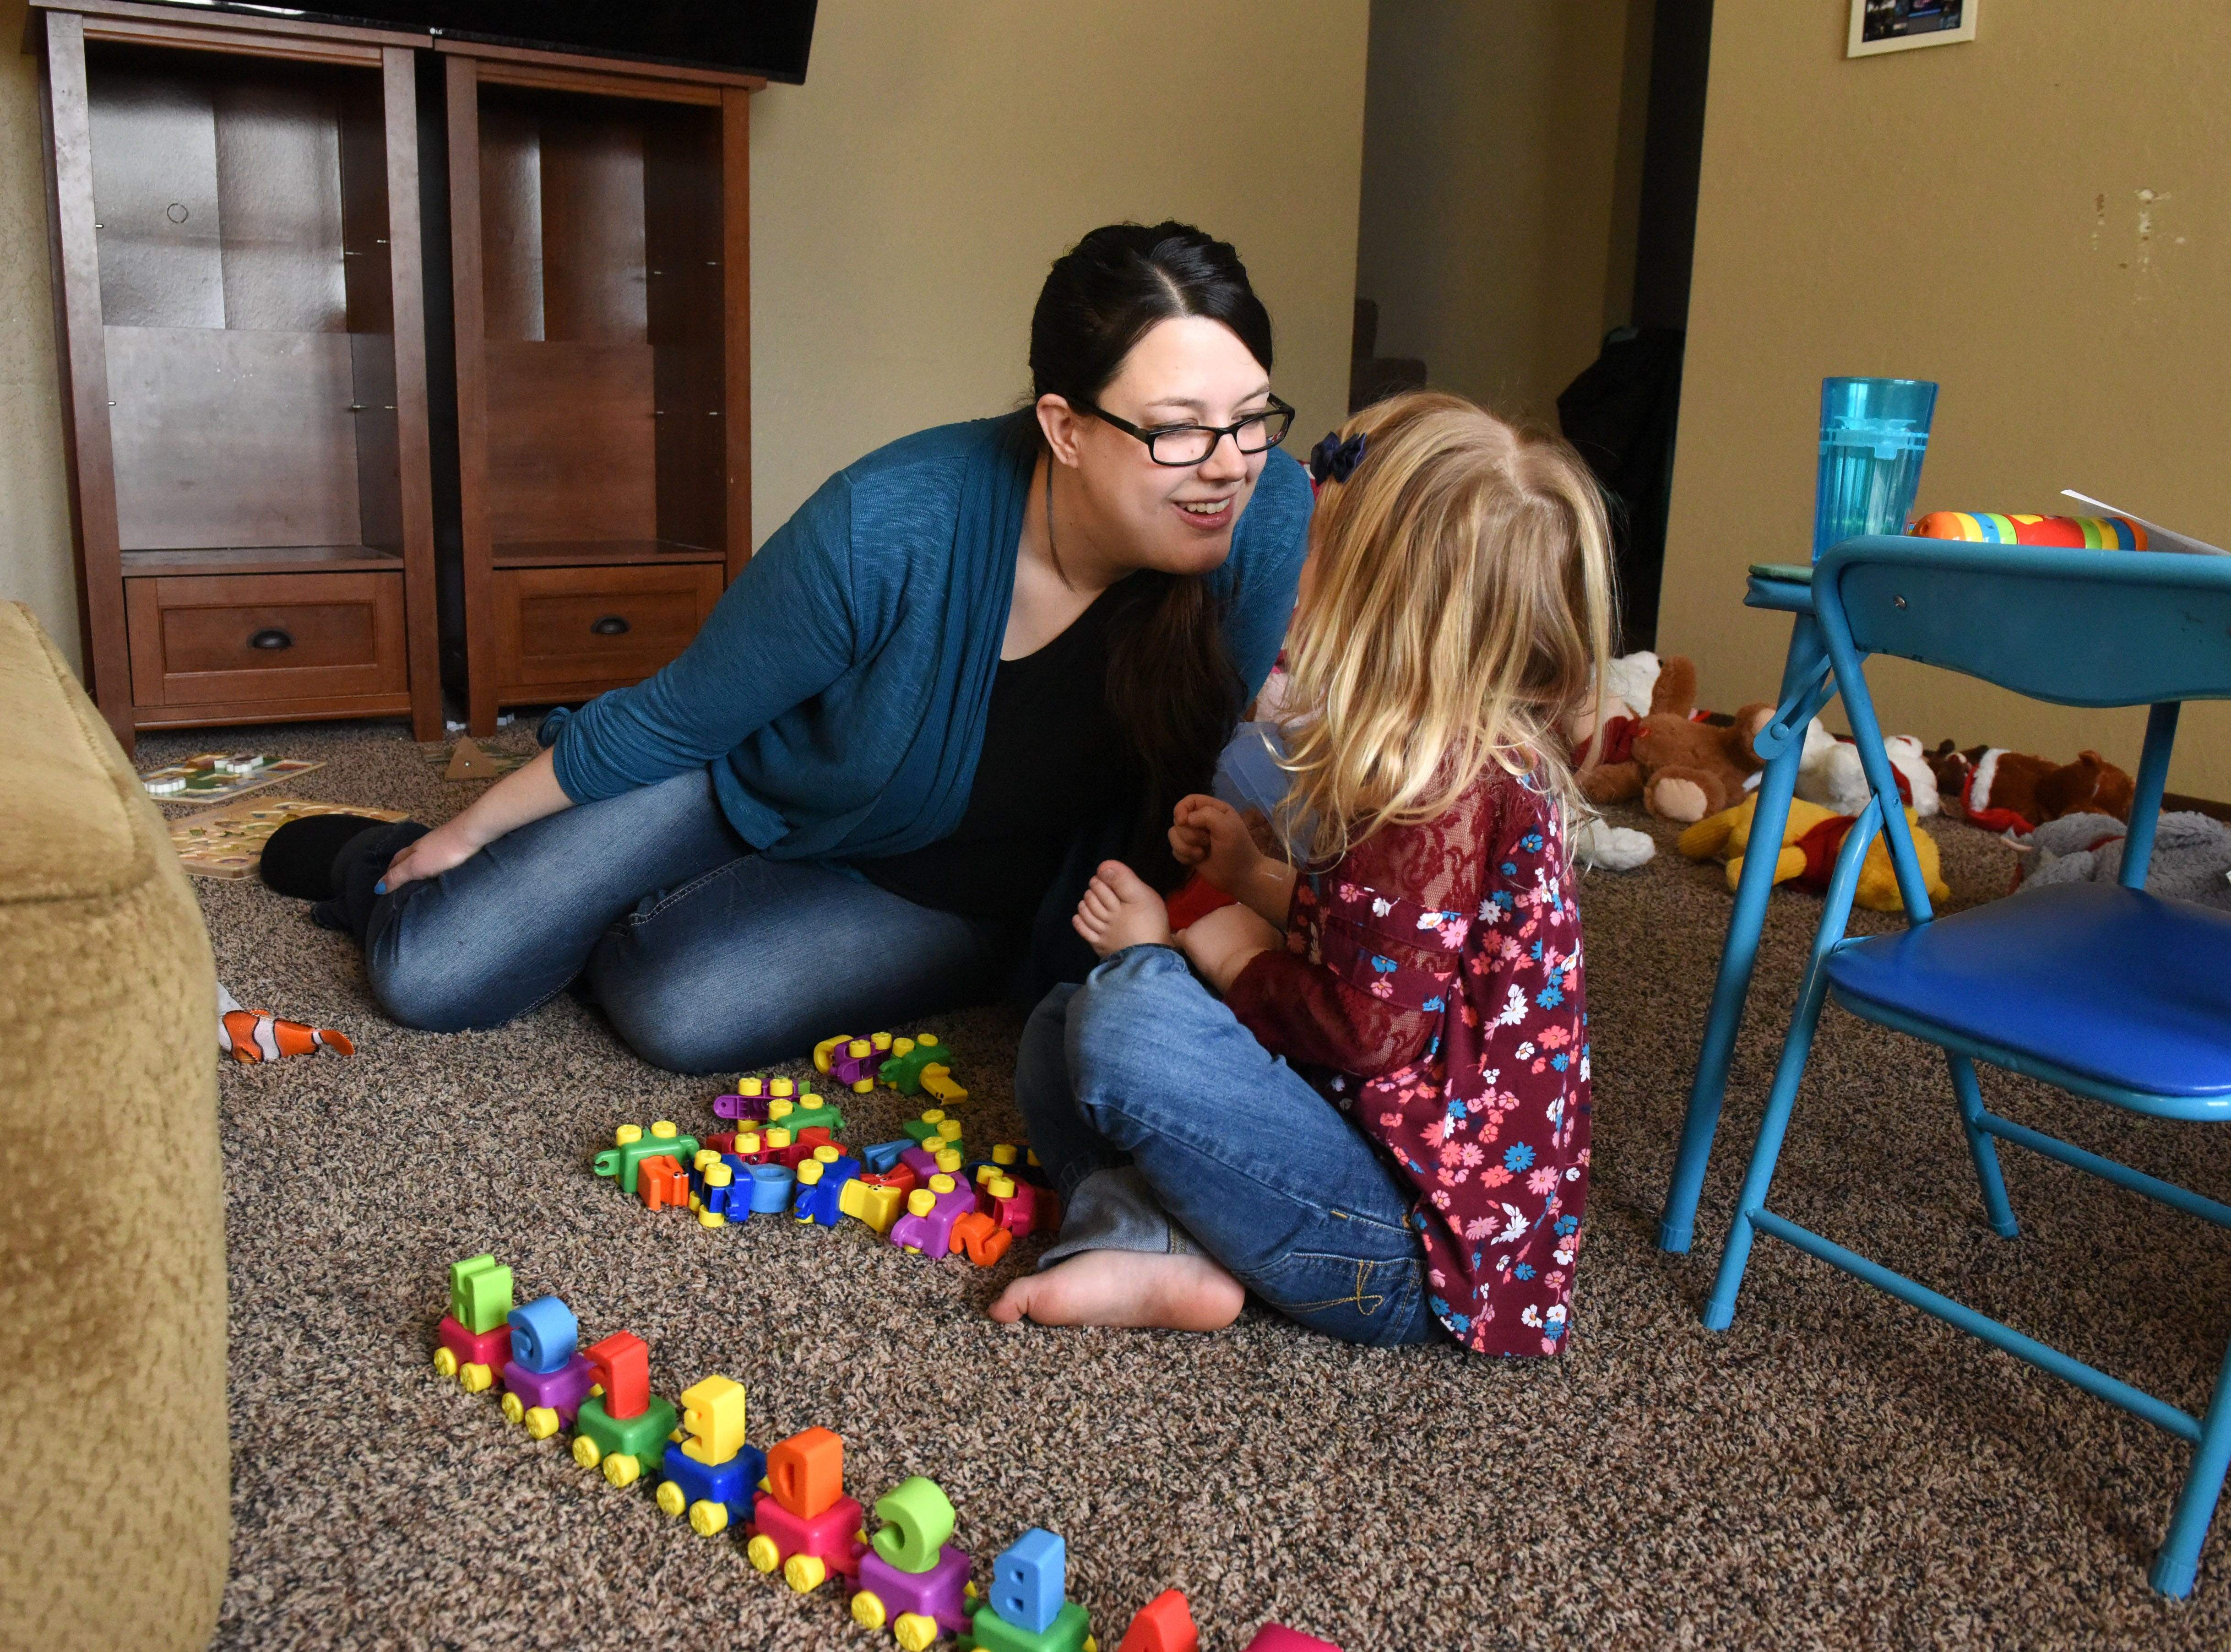 Krystal Trull plays with her daughter Nikole Trull, 4, at their house in Sioux Falls, S.D., Friday, Feb. 1, 2019.